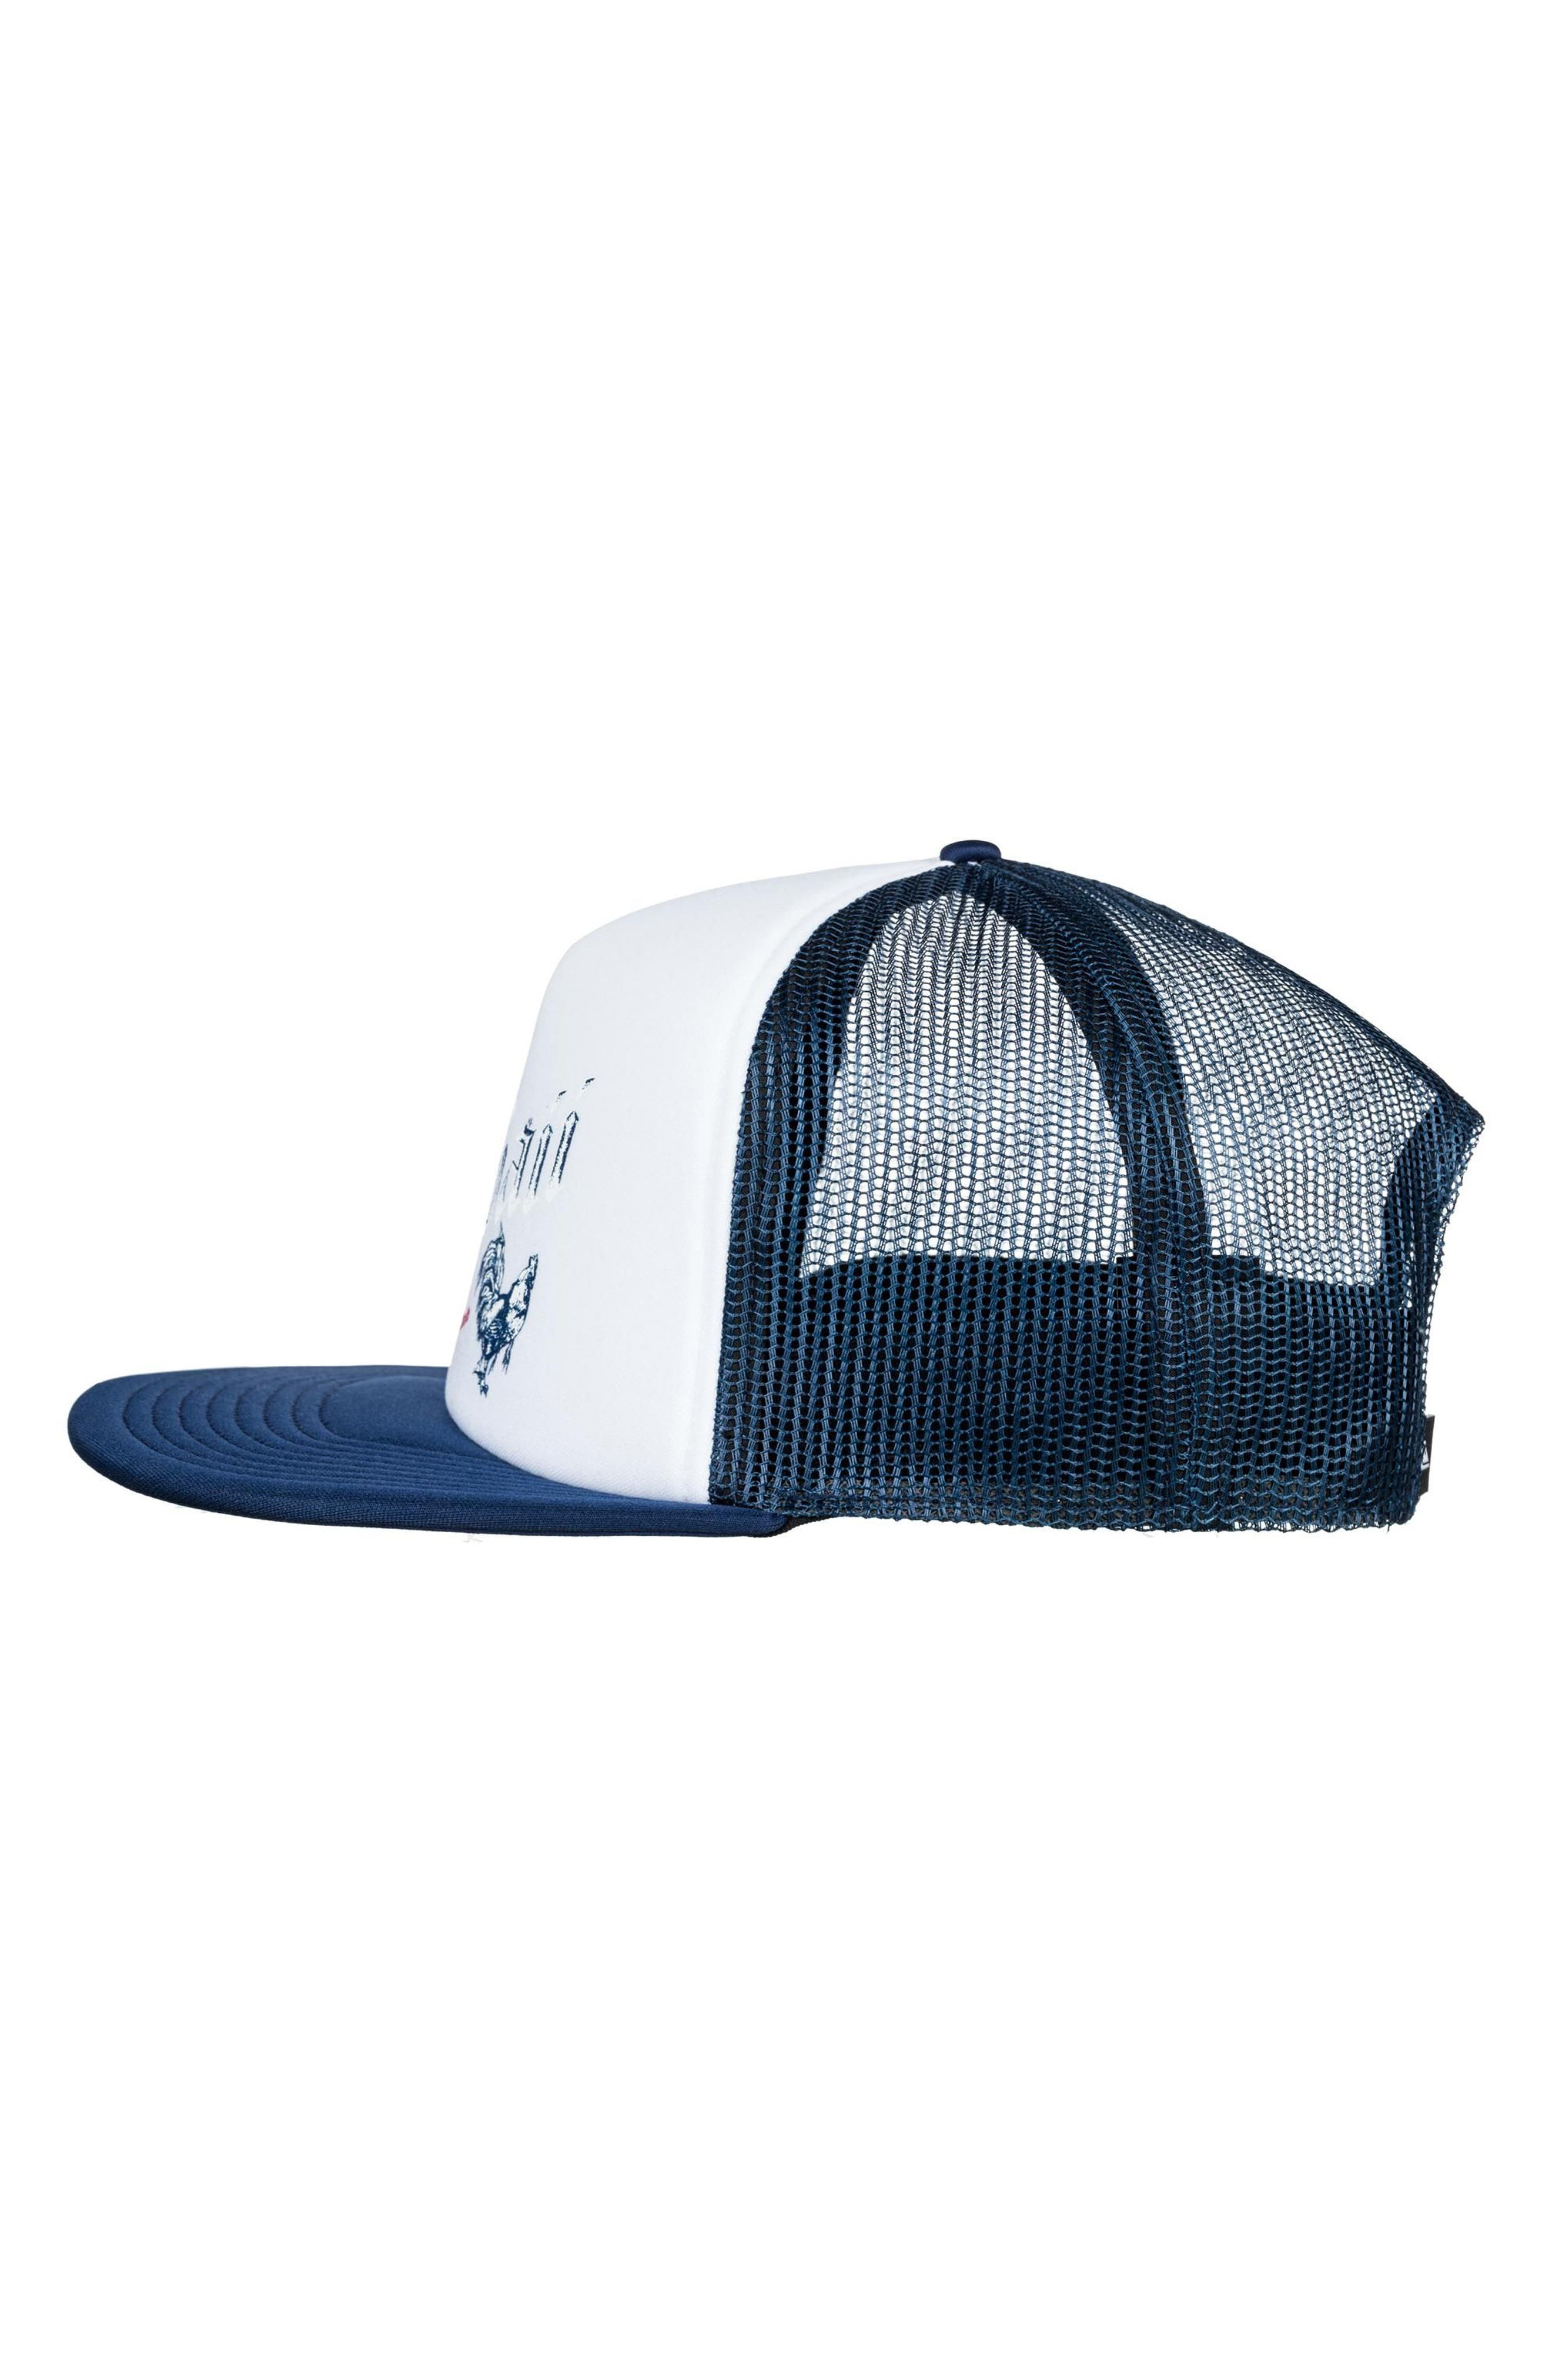 Rooster Graphic Trucker Hat,                             Alternate thumbnail 3, color,                             White